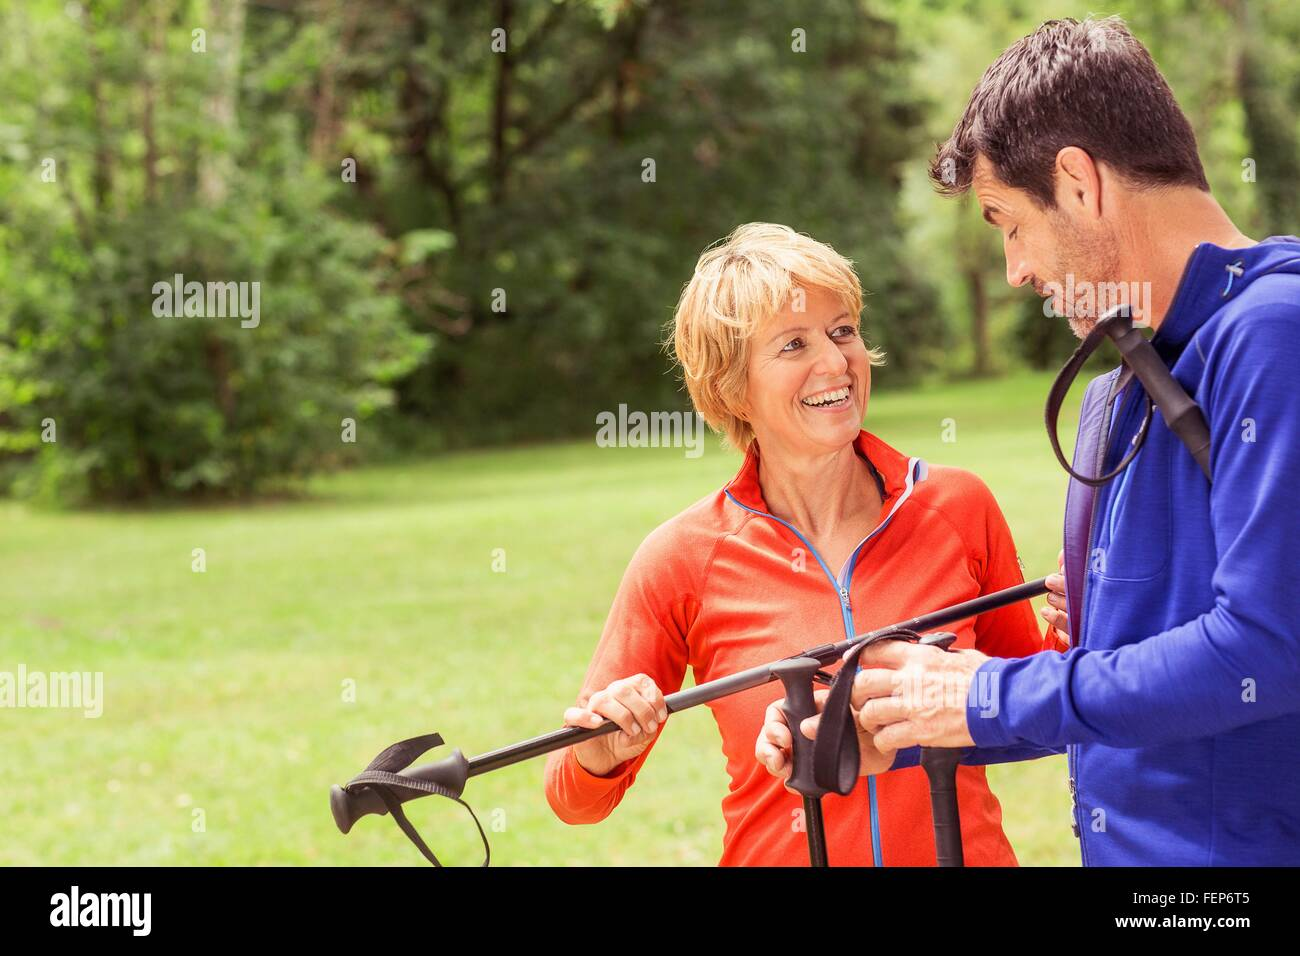 Couple outdoors with walking poles - Stock Image